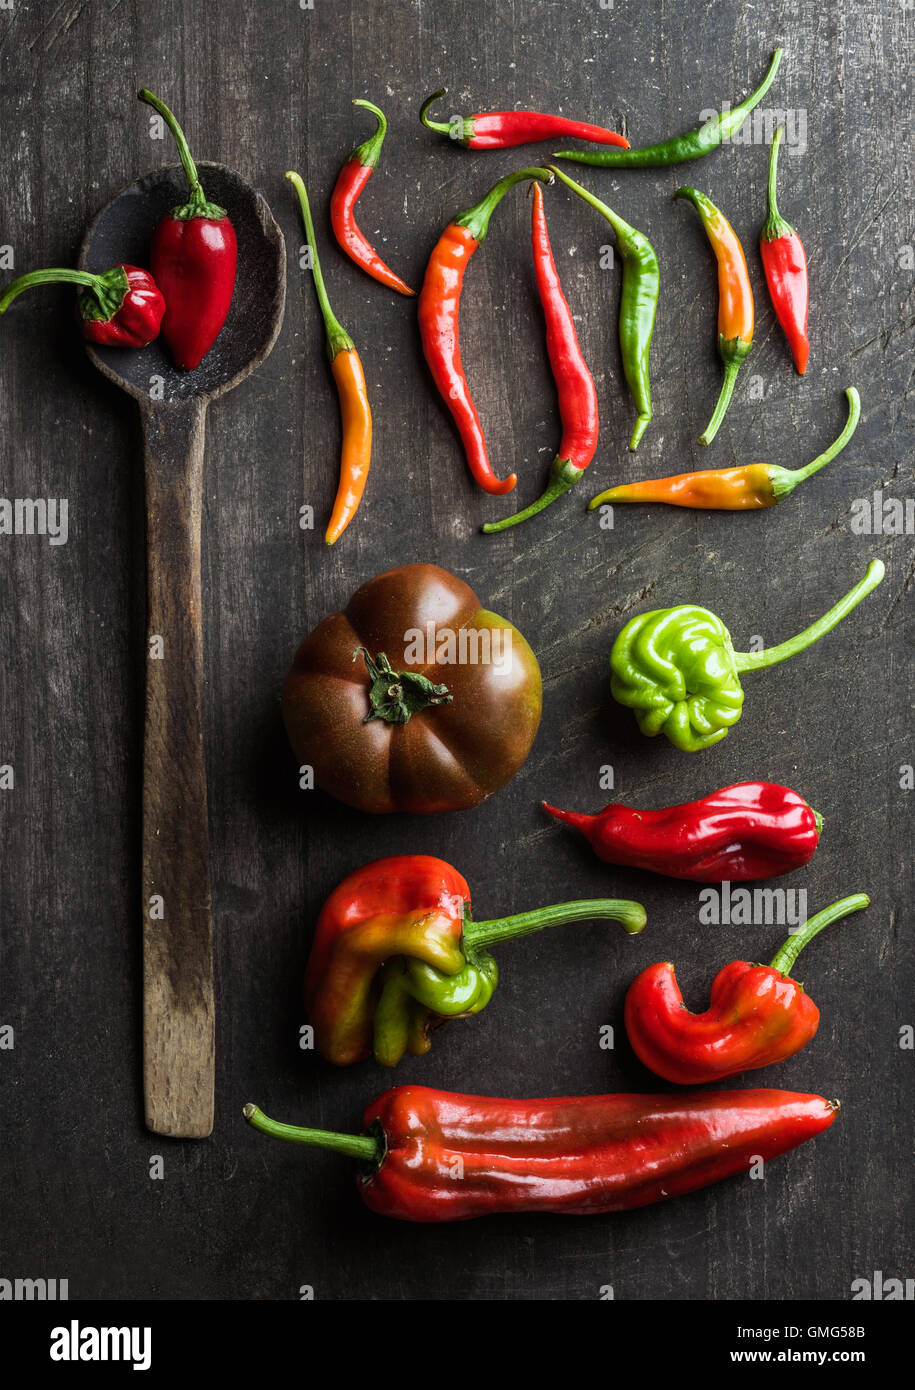 Red and green vegetables with rustic old spoon on dark wooden background, top view - Stock Image